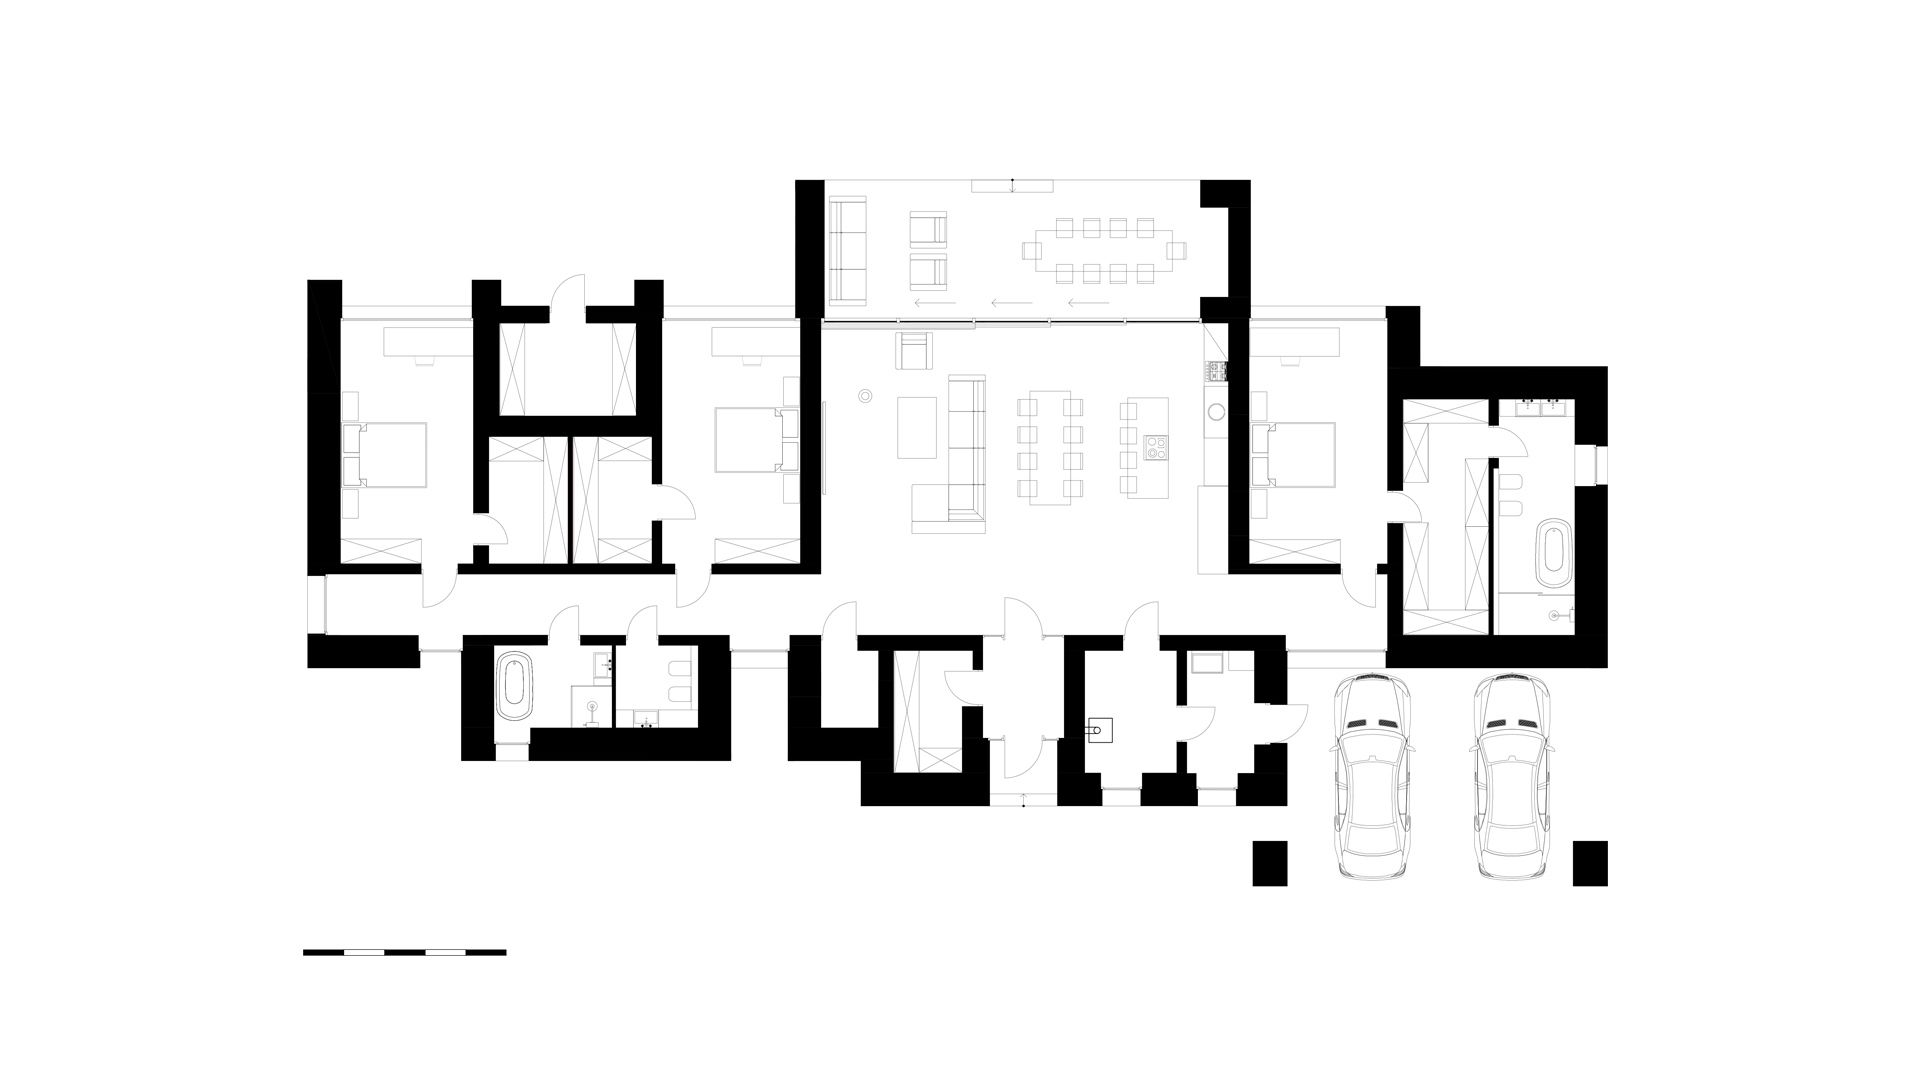 the layout of a private house